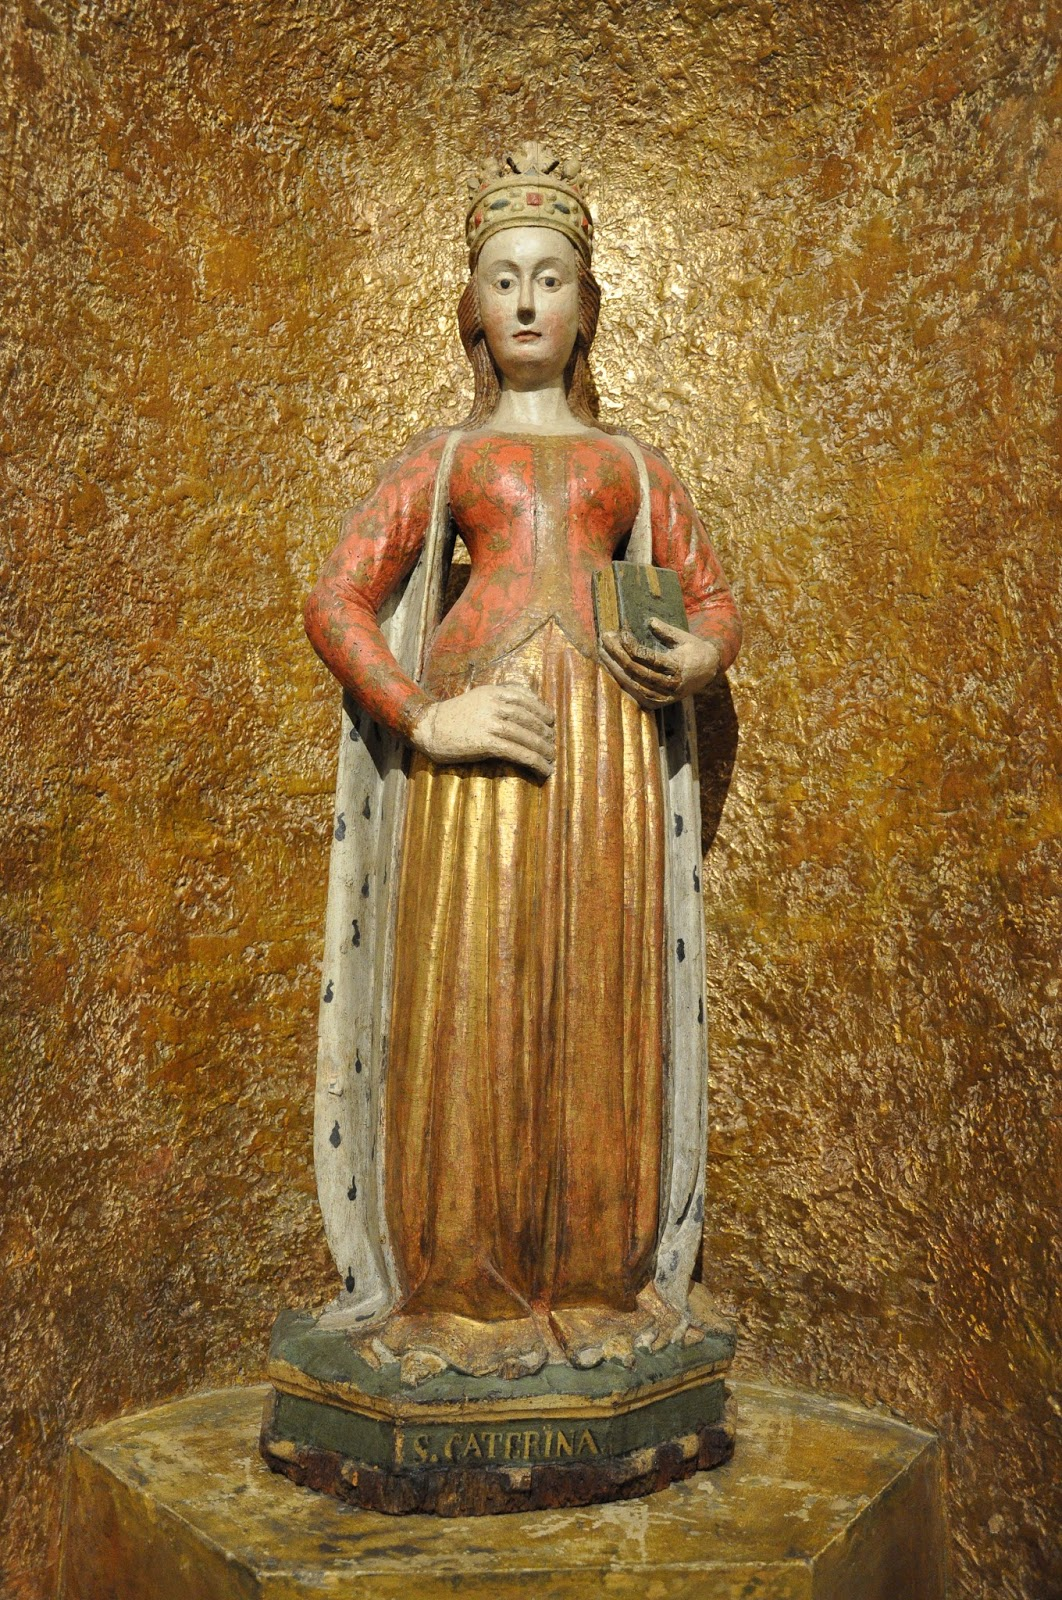 A figure of St. Catherine at the entrance to the Antique Art Museum, Palazzo Madama, Turin, Italy